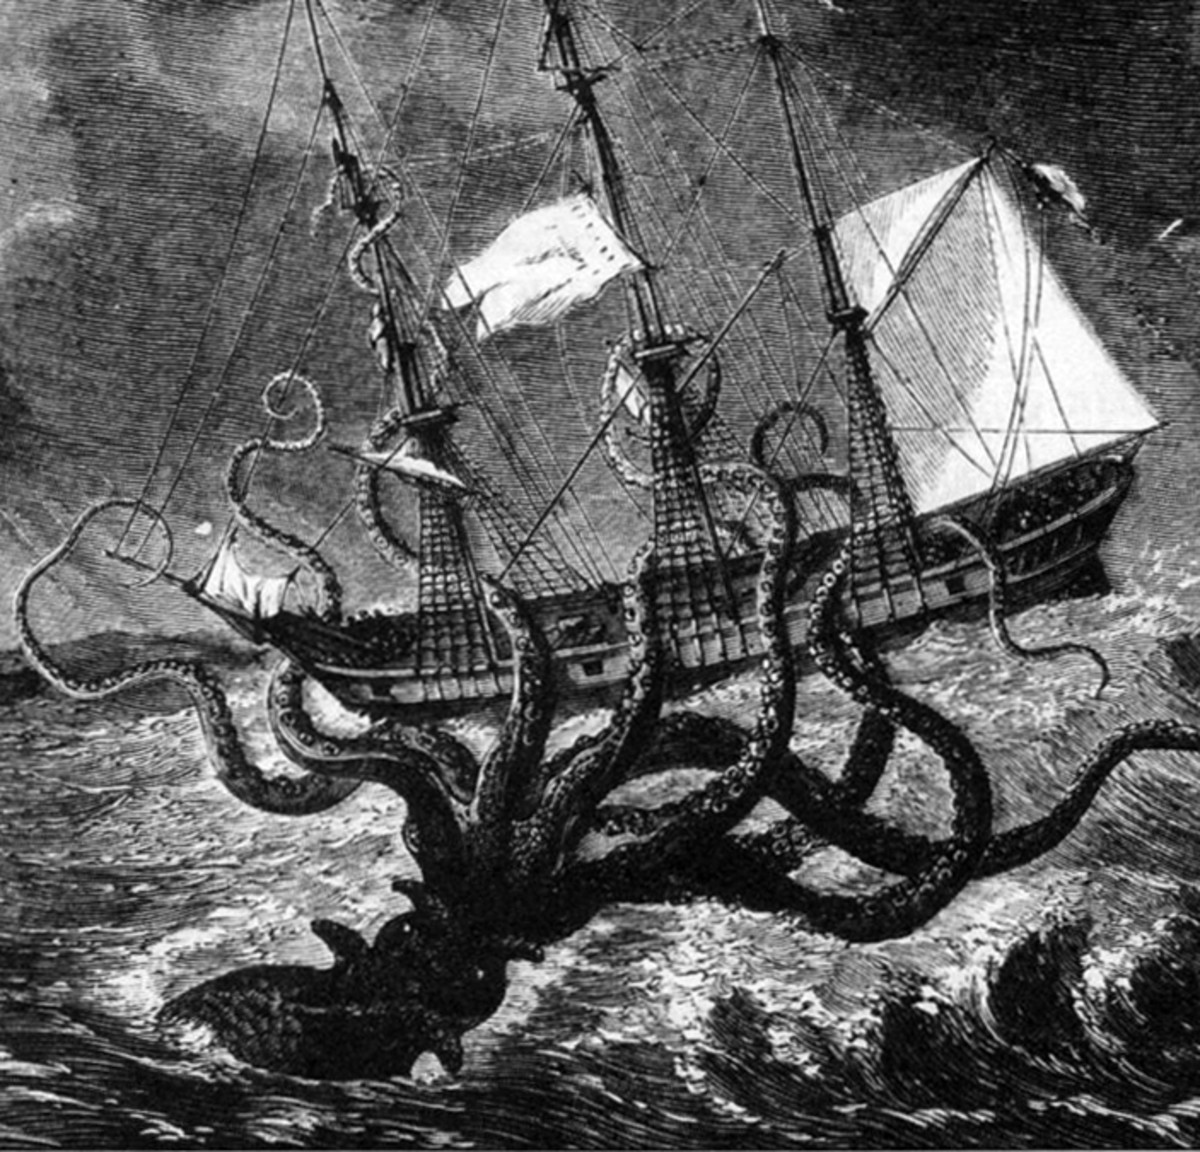 Giant octopus attacks a ship